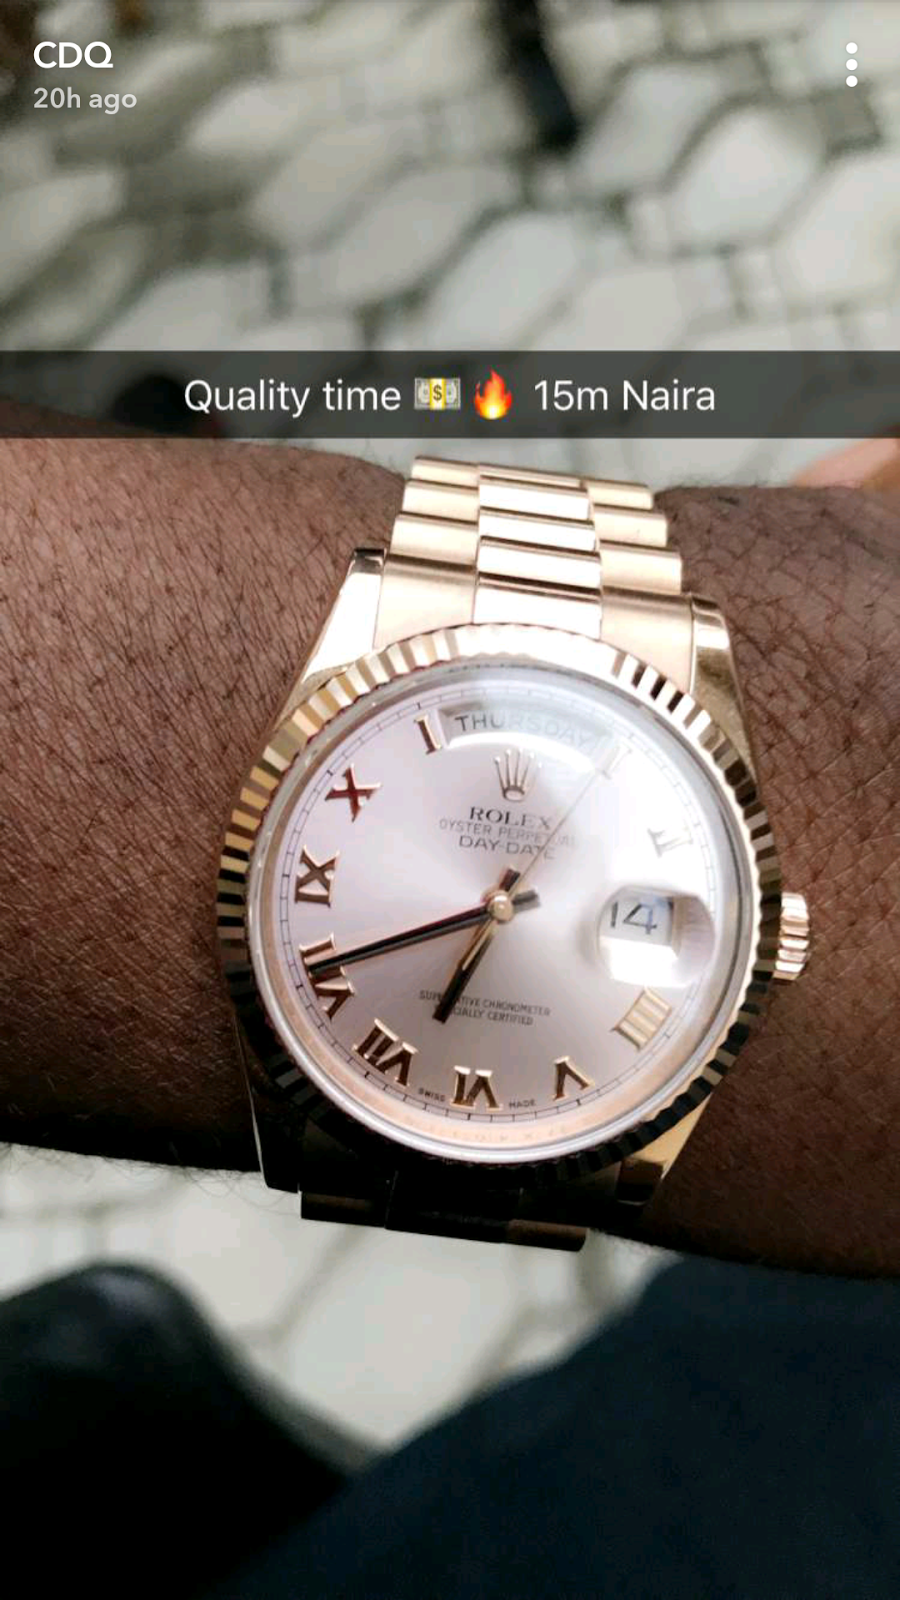 CDQ Claims His New Rolex Watch Costs N15million image